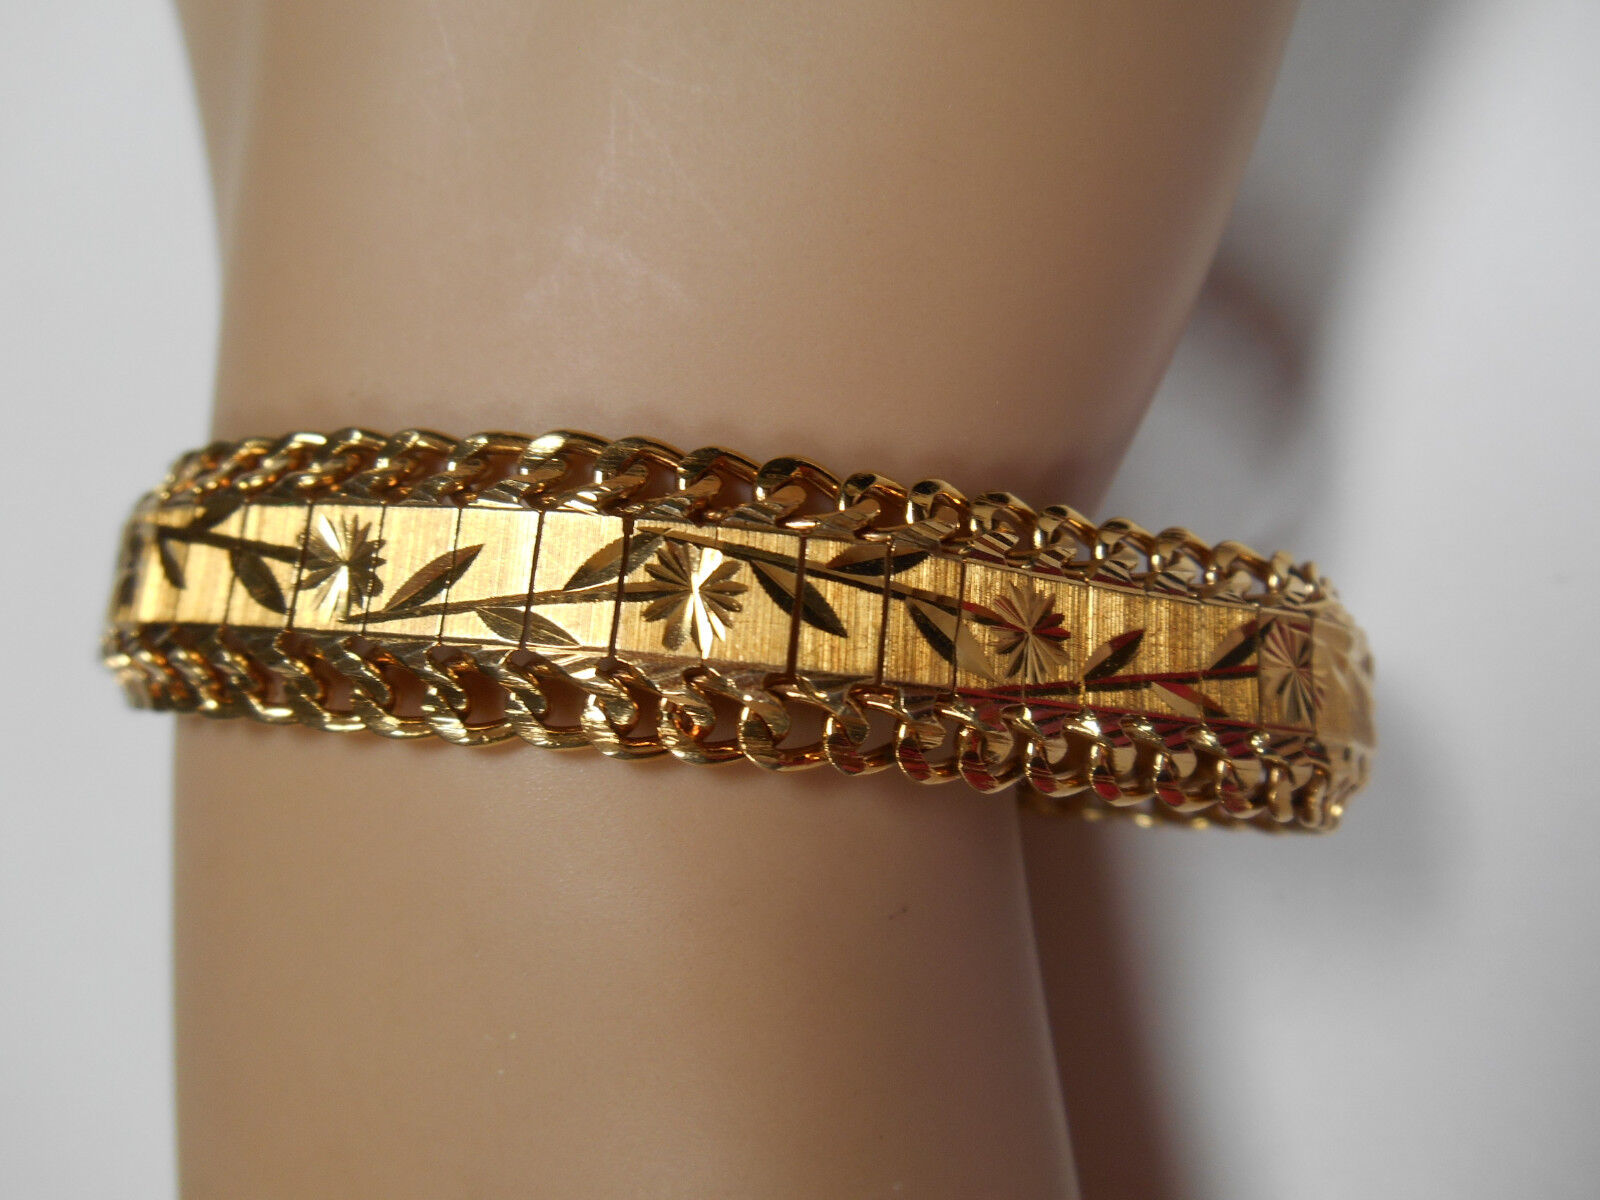 18K Min. Yellow gold Bracelet Wide Etched Links with Double Chain 29 grams